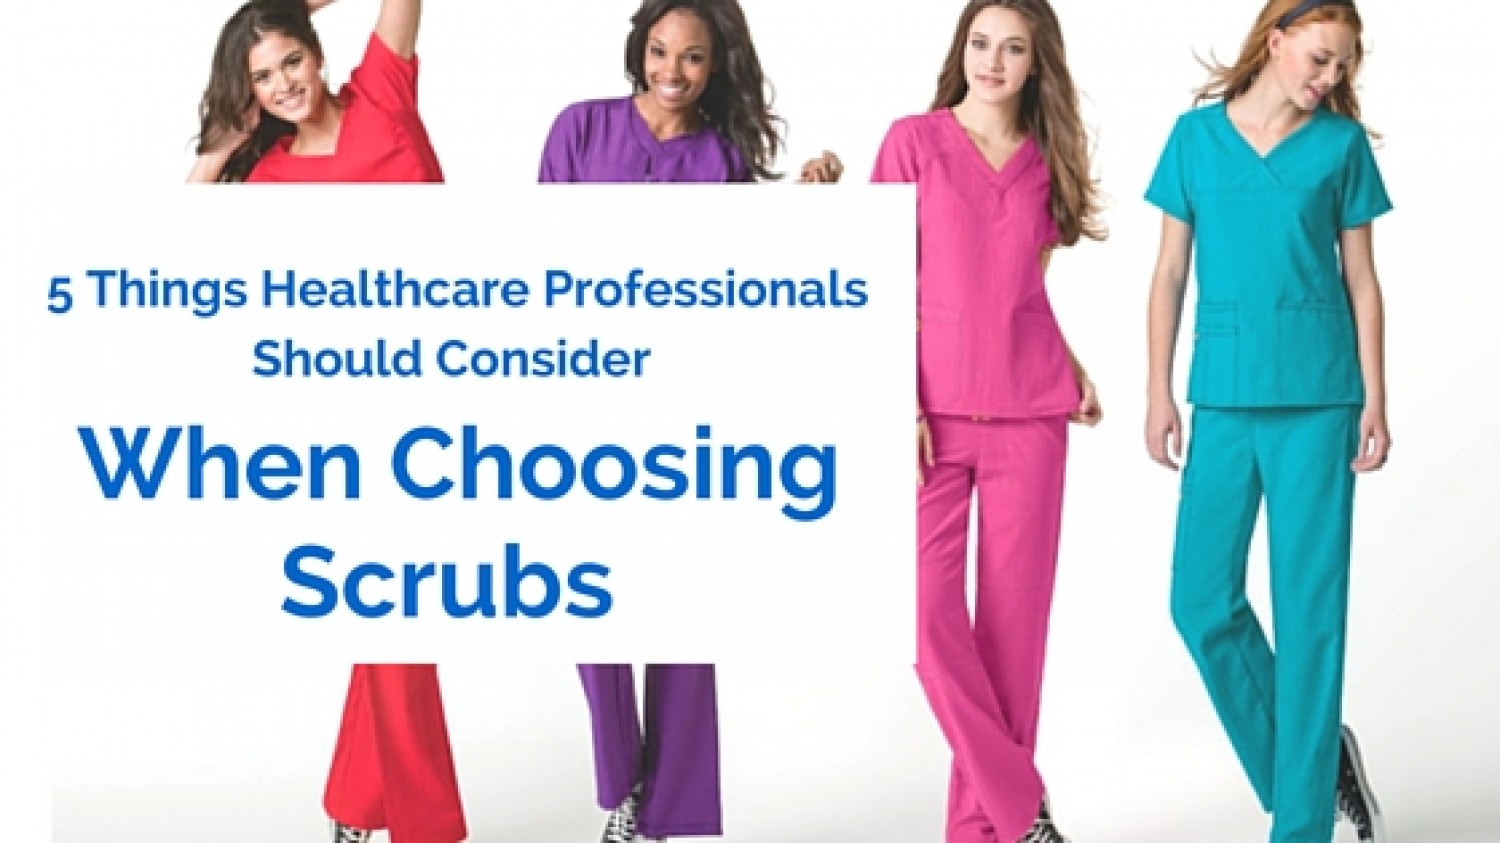 5 Things Healthcare Professionals Should Consider WHEN CHOOSING SCRUBS